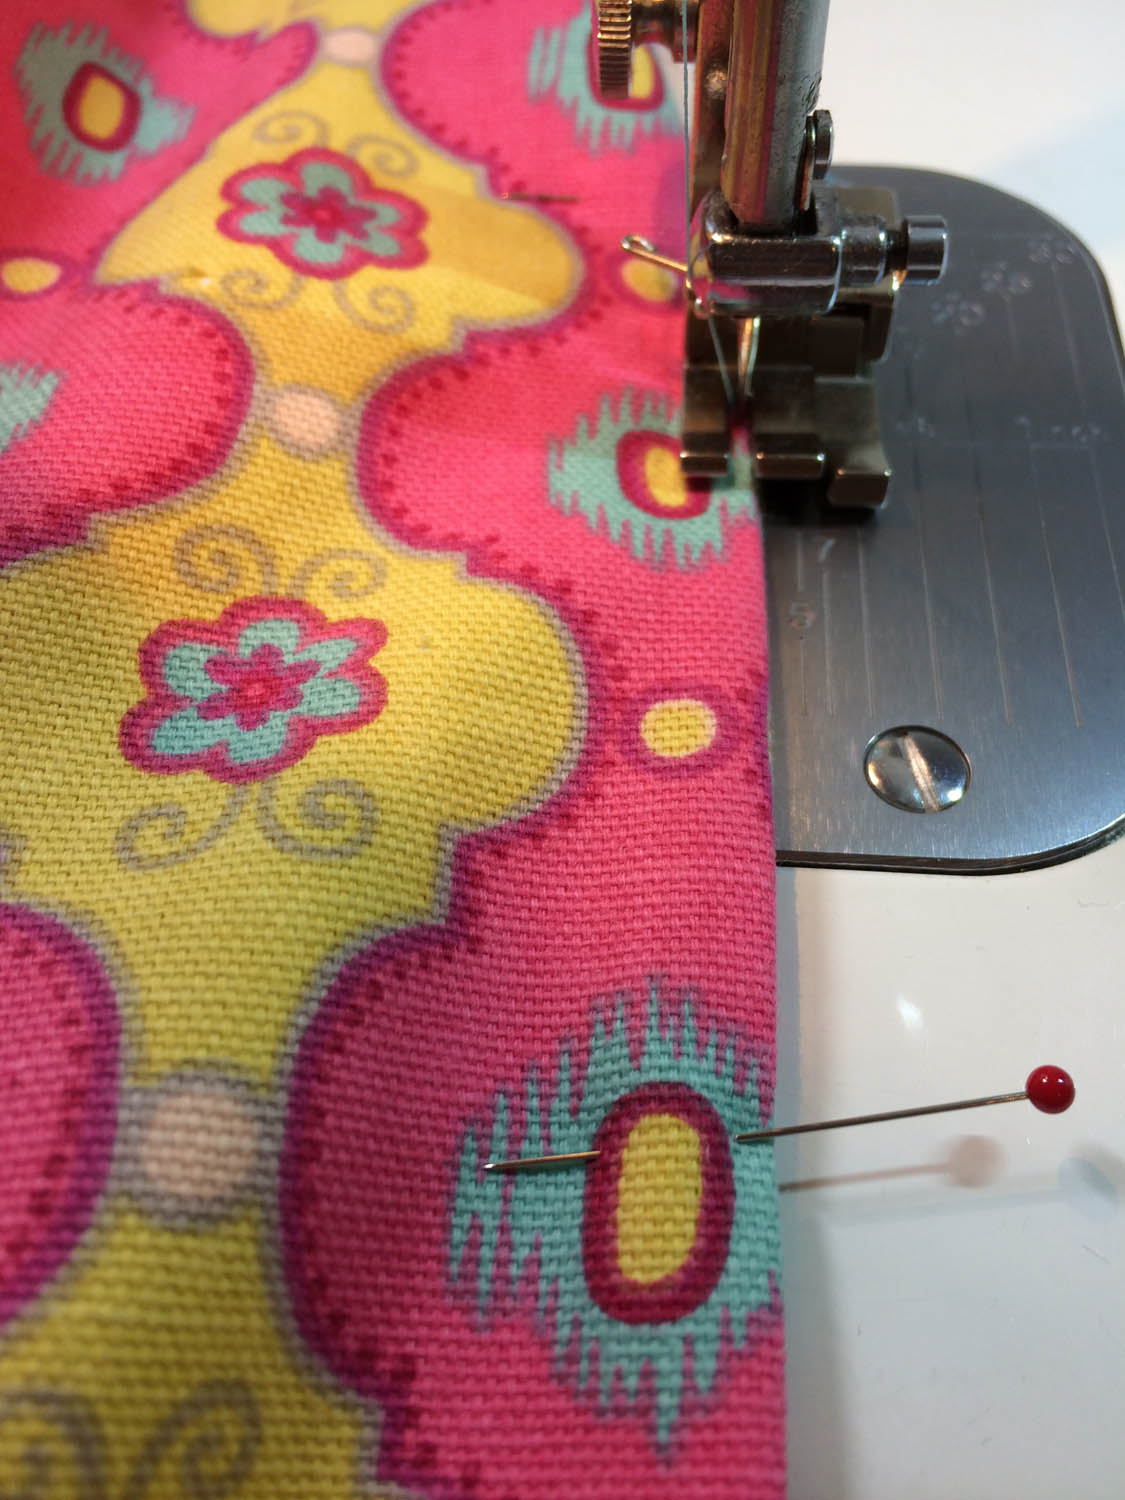 machine sewing the turning opening closed